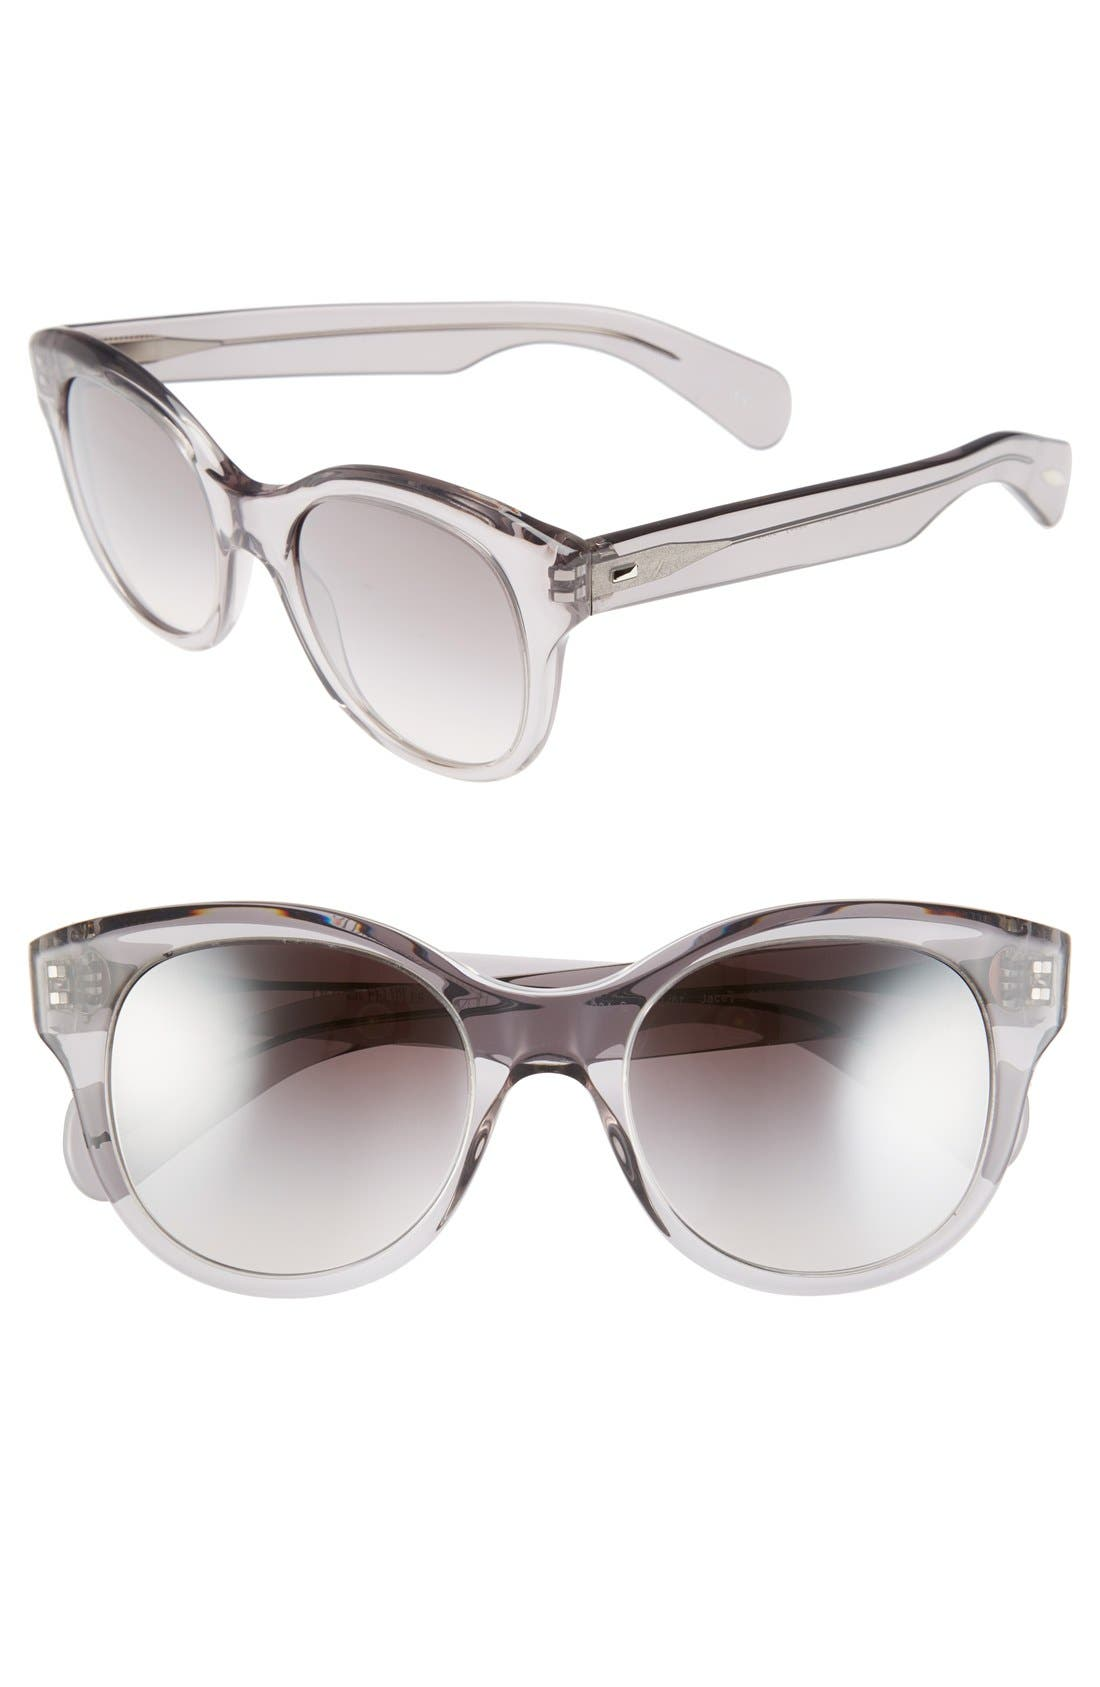 Alternate Image 1 Selected - Oliver Peoples 'Jacey' 53mm Sunglasses